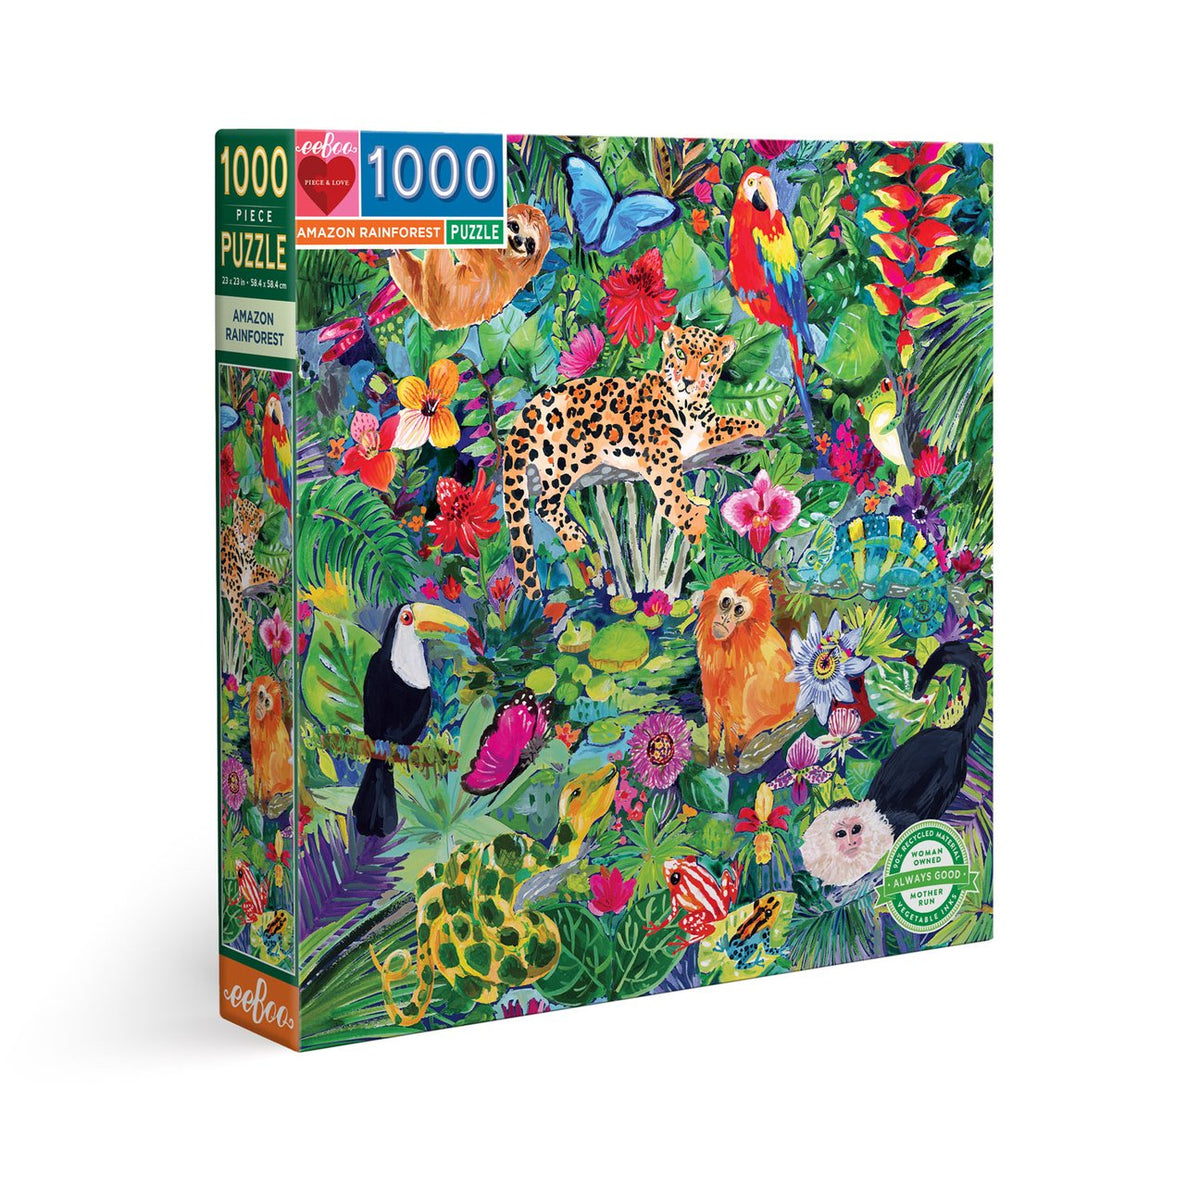 Amazon Rainforest 1000 Piece Puzzle - Quick Ship - Puzzlicious.com